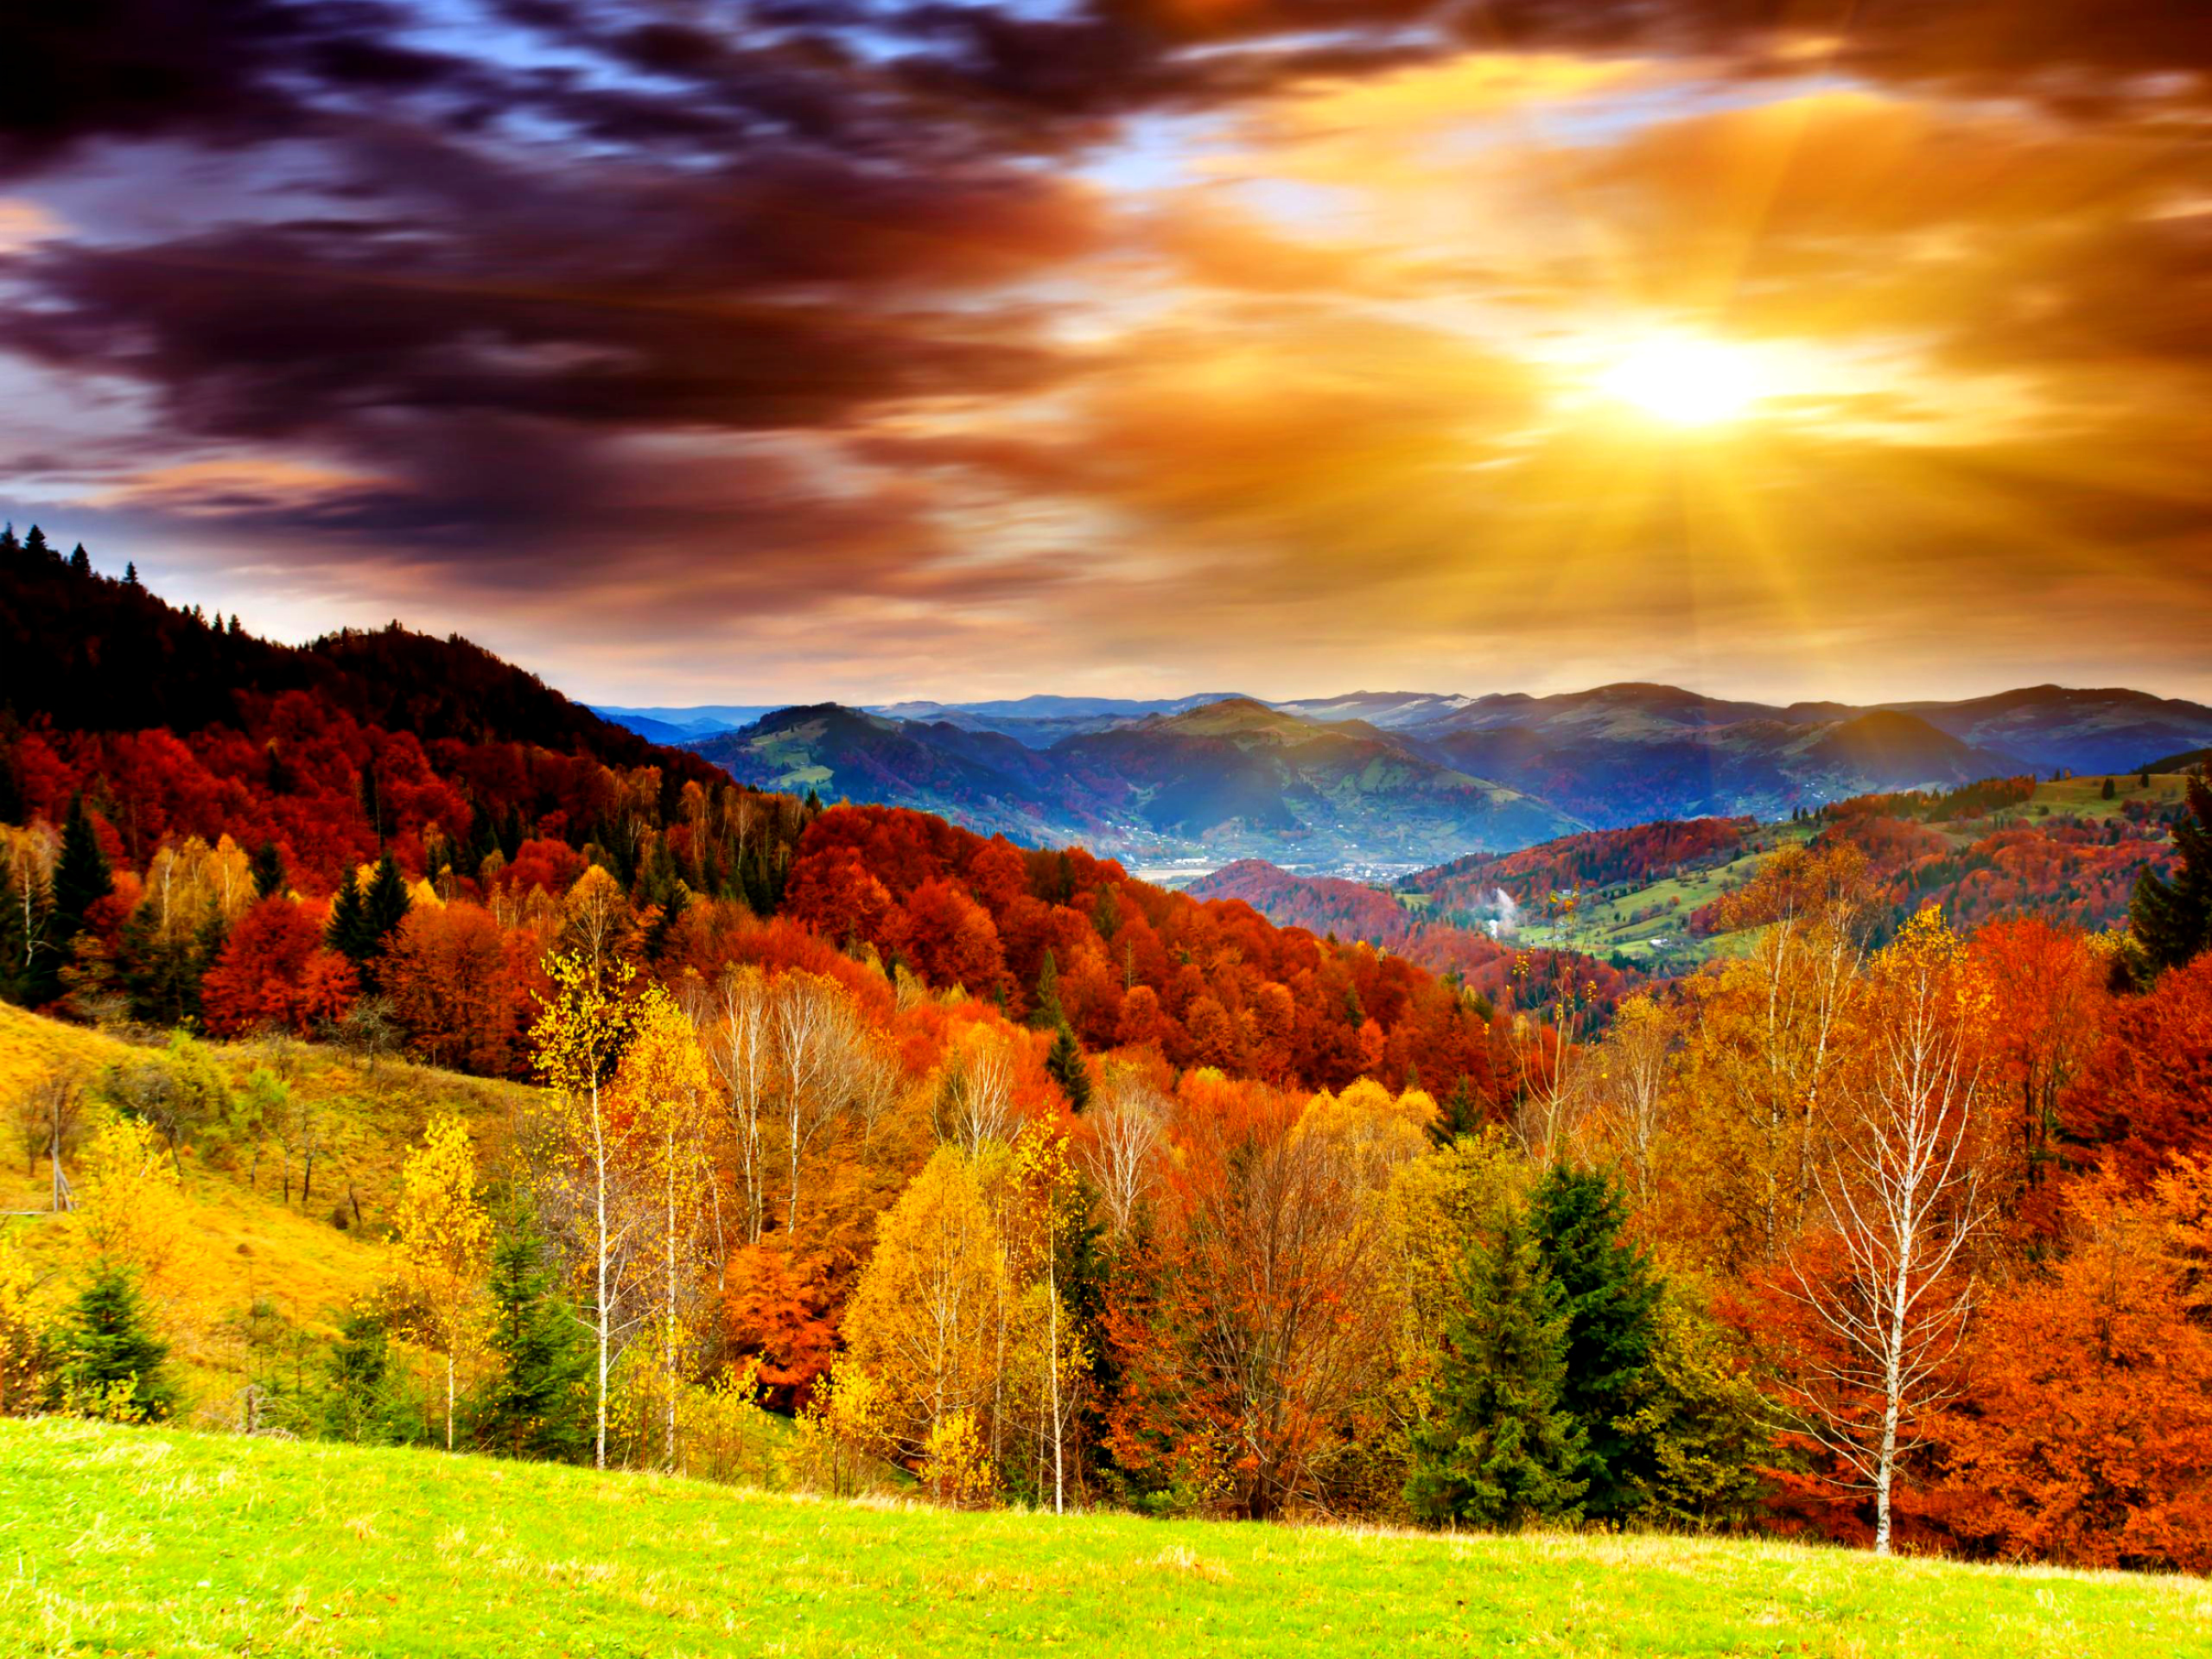 Colors Autumn Hd Images 3 HD Wallpapers